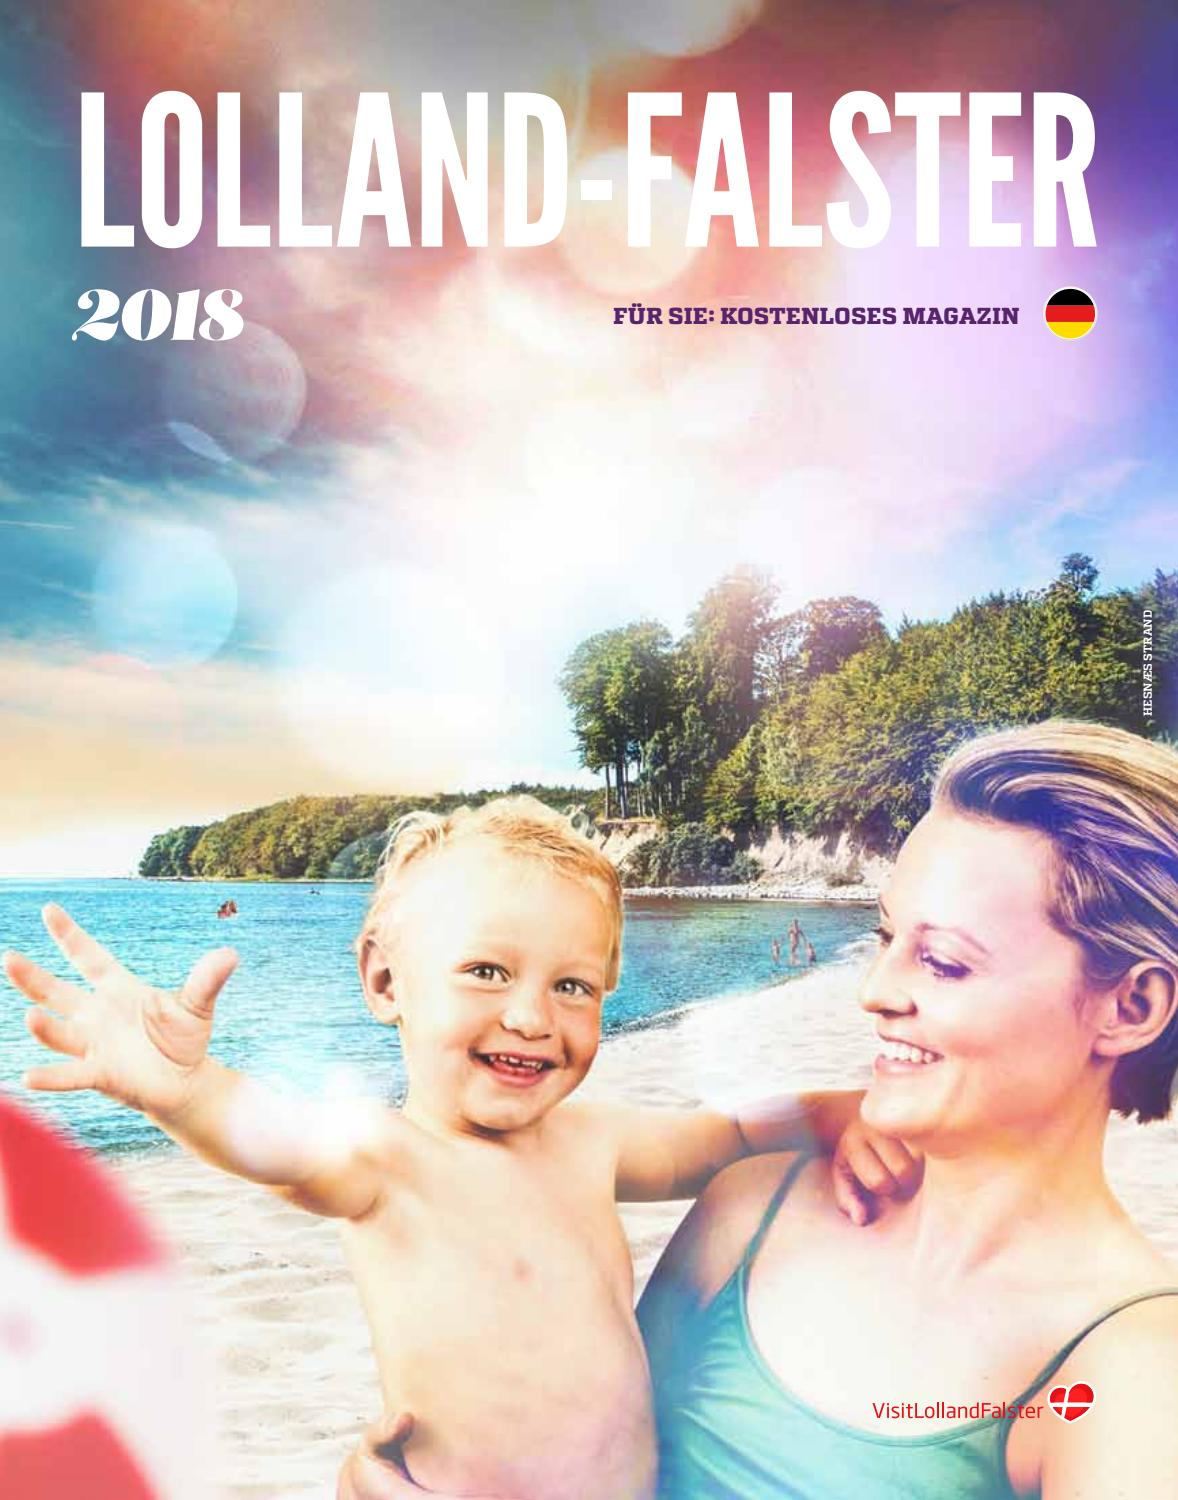 Lolland-Falster Magazin 2018 by Business Lolland-Falster - issuu